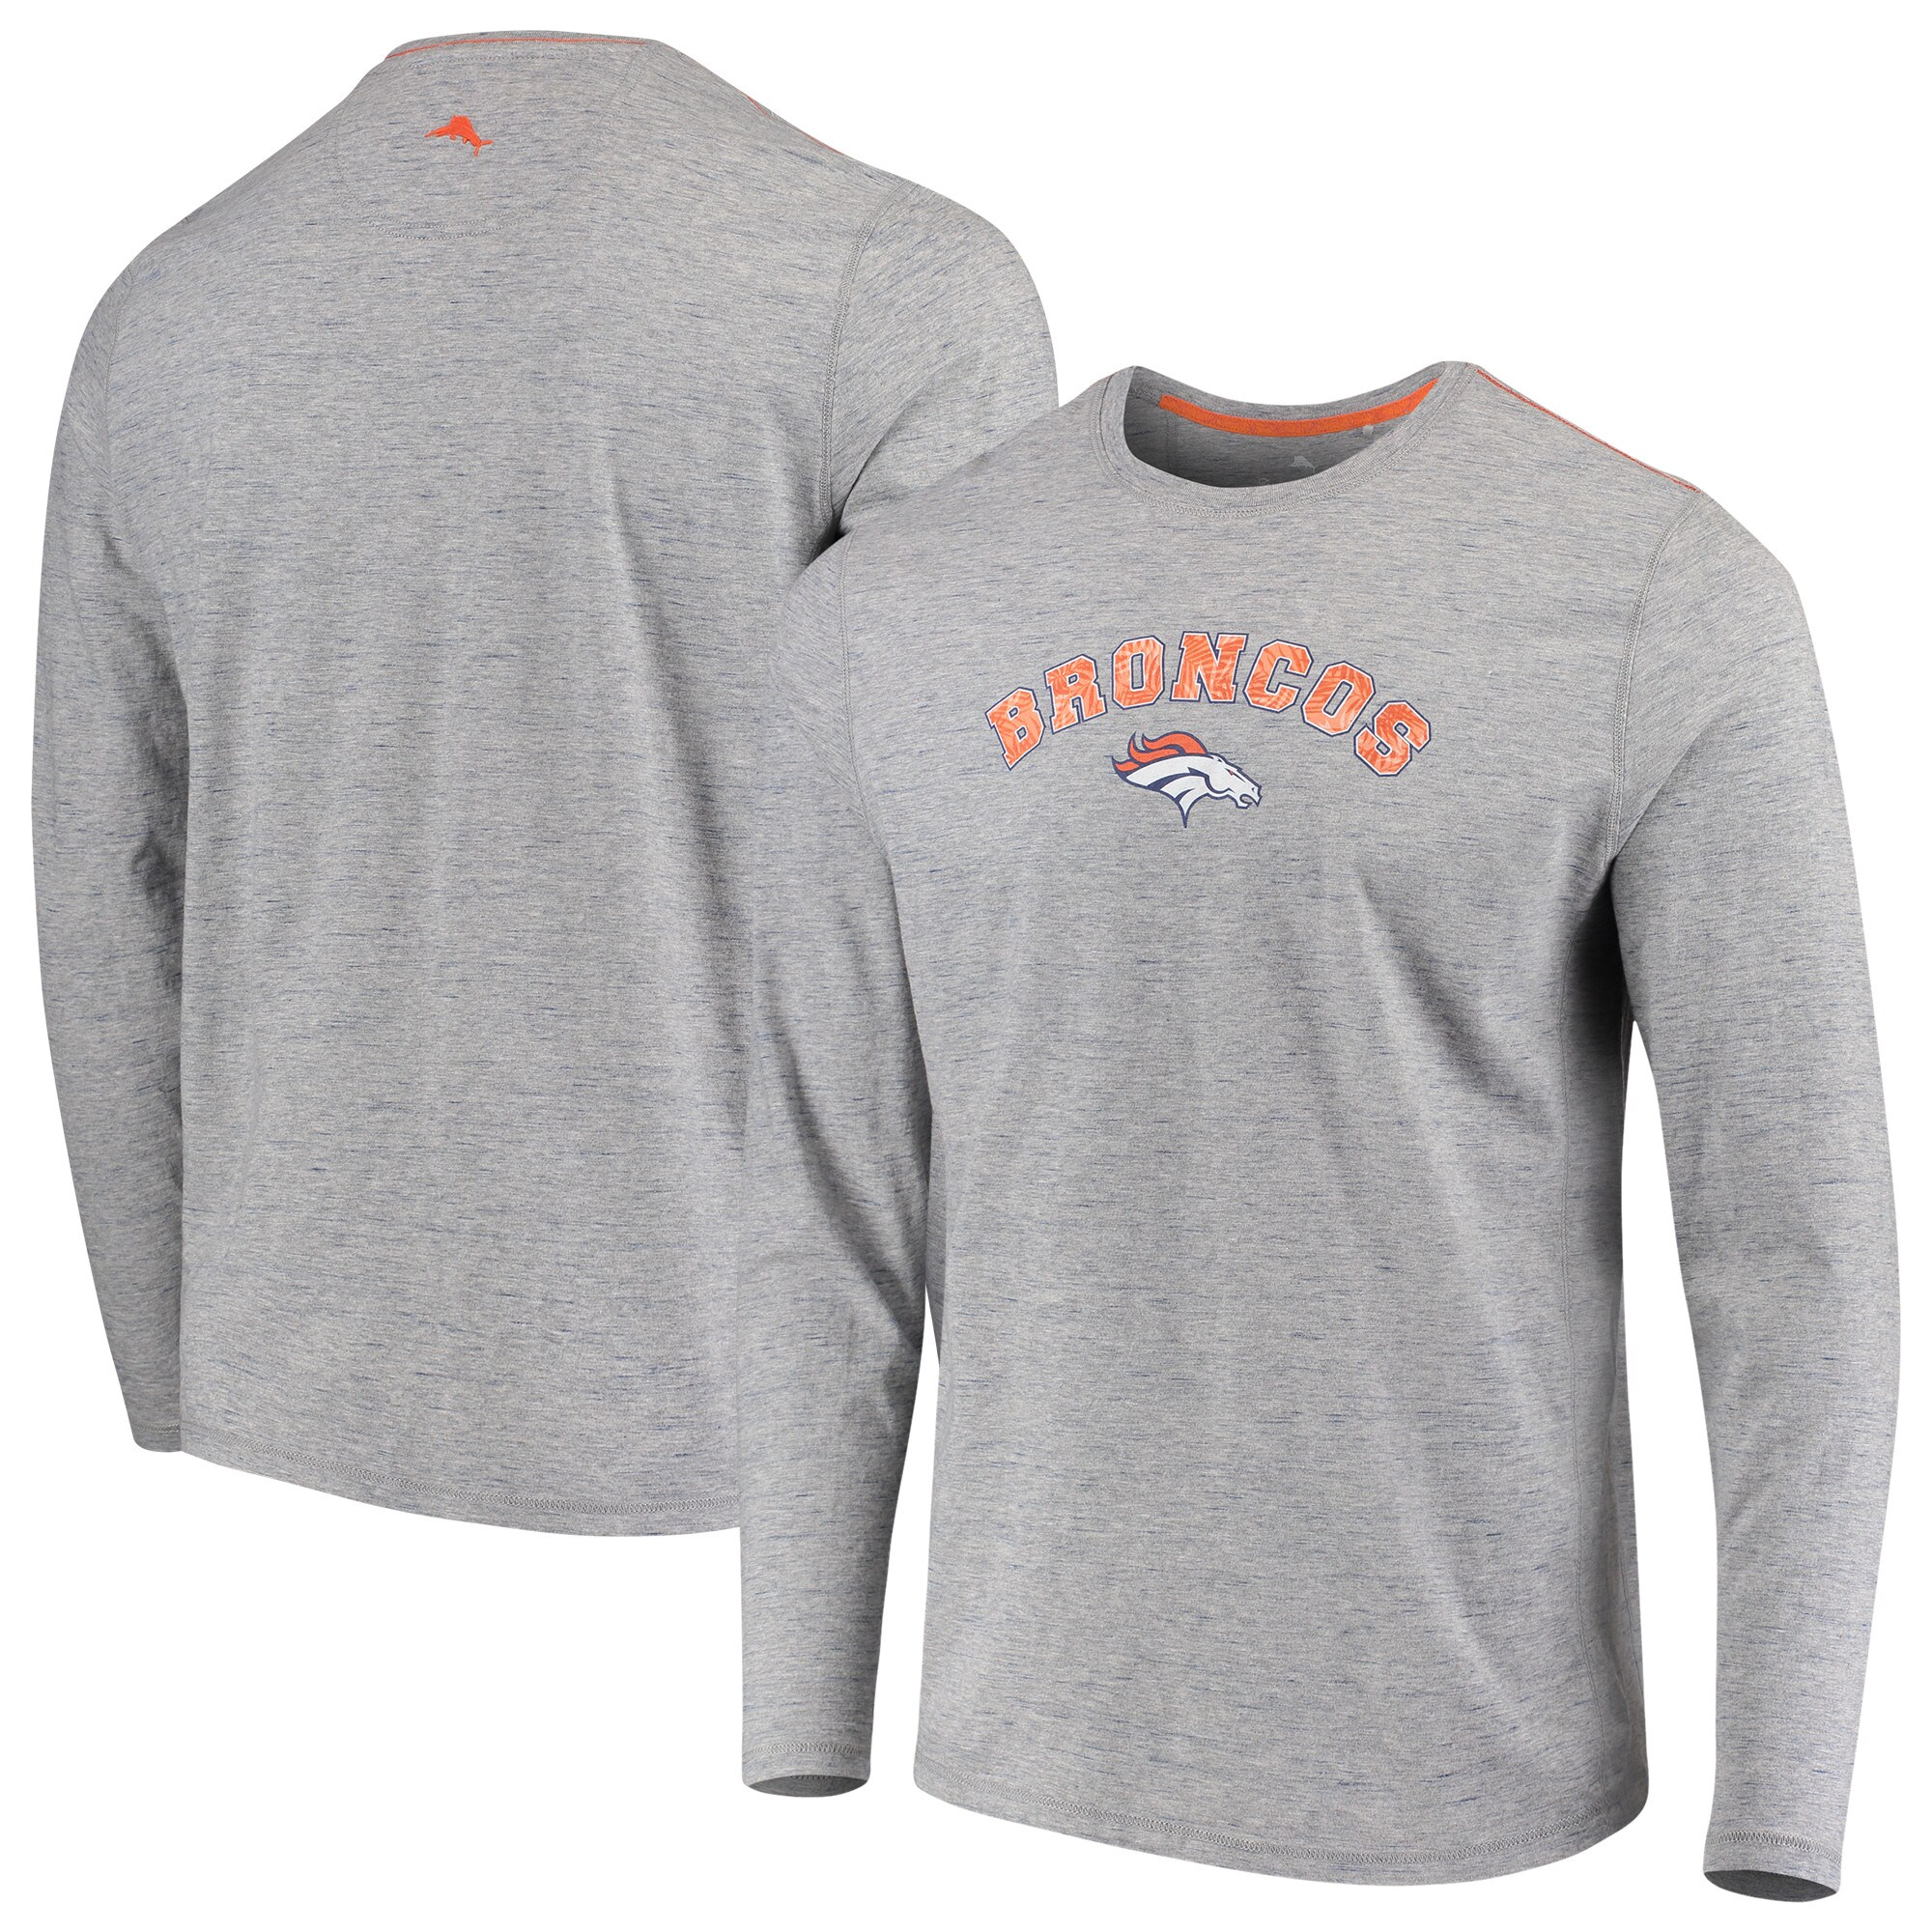 Denver Broncos Tommy Bahama Fronds In The Box Long Sleeve T-Shirt - Heathered Gray